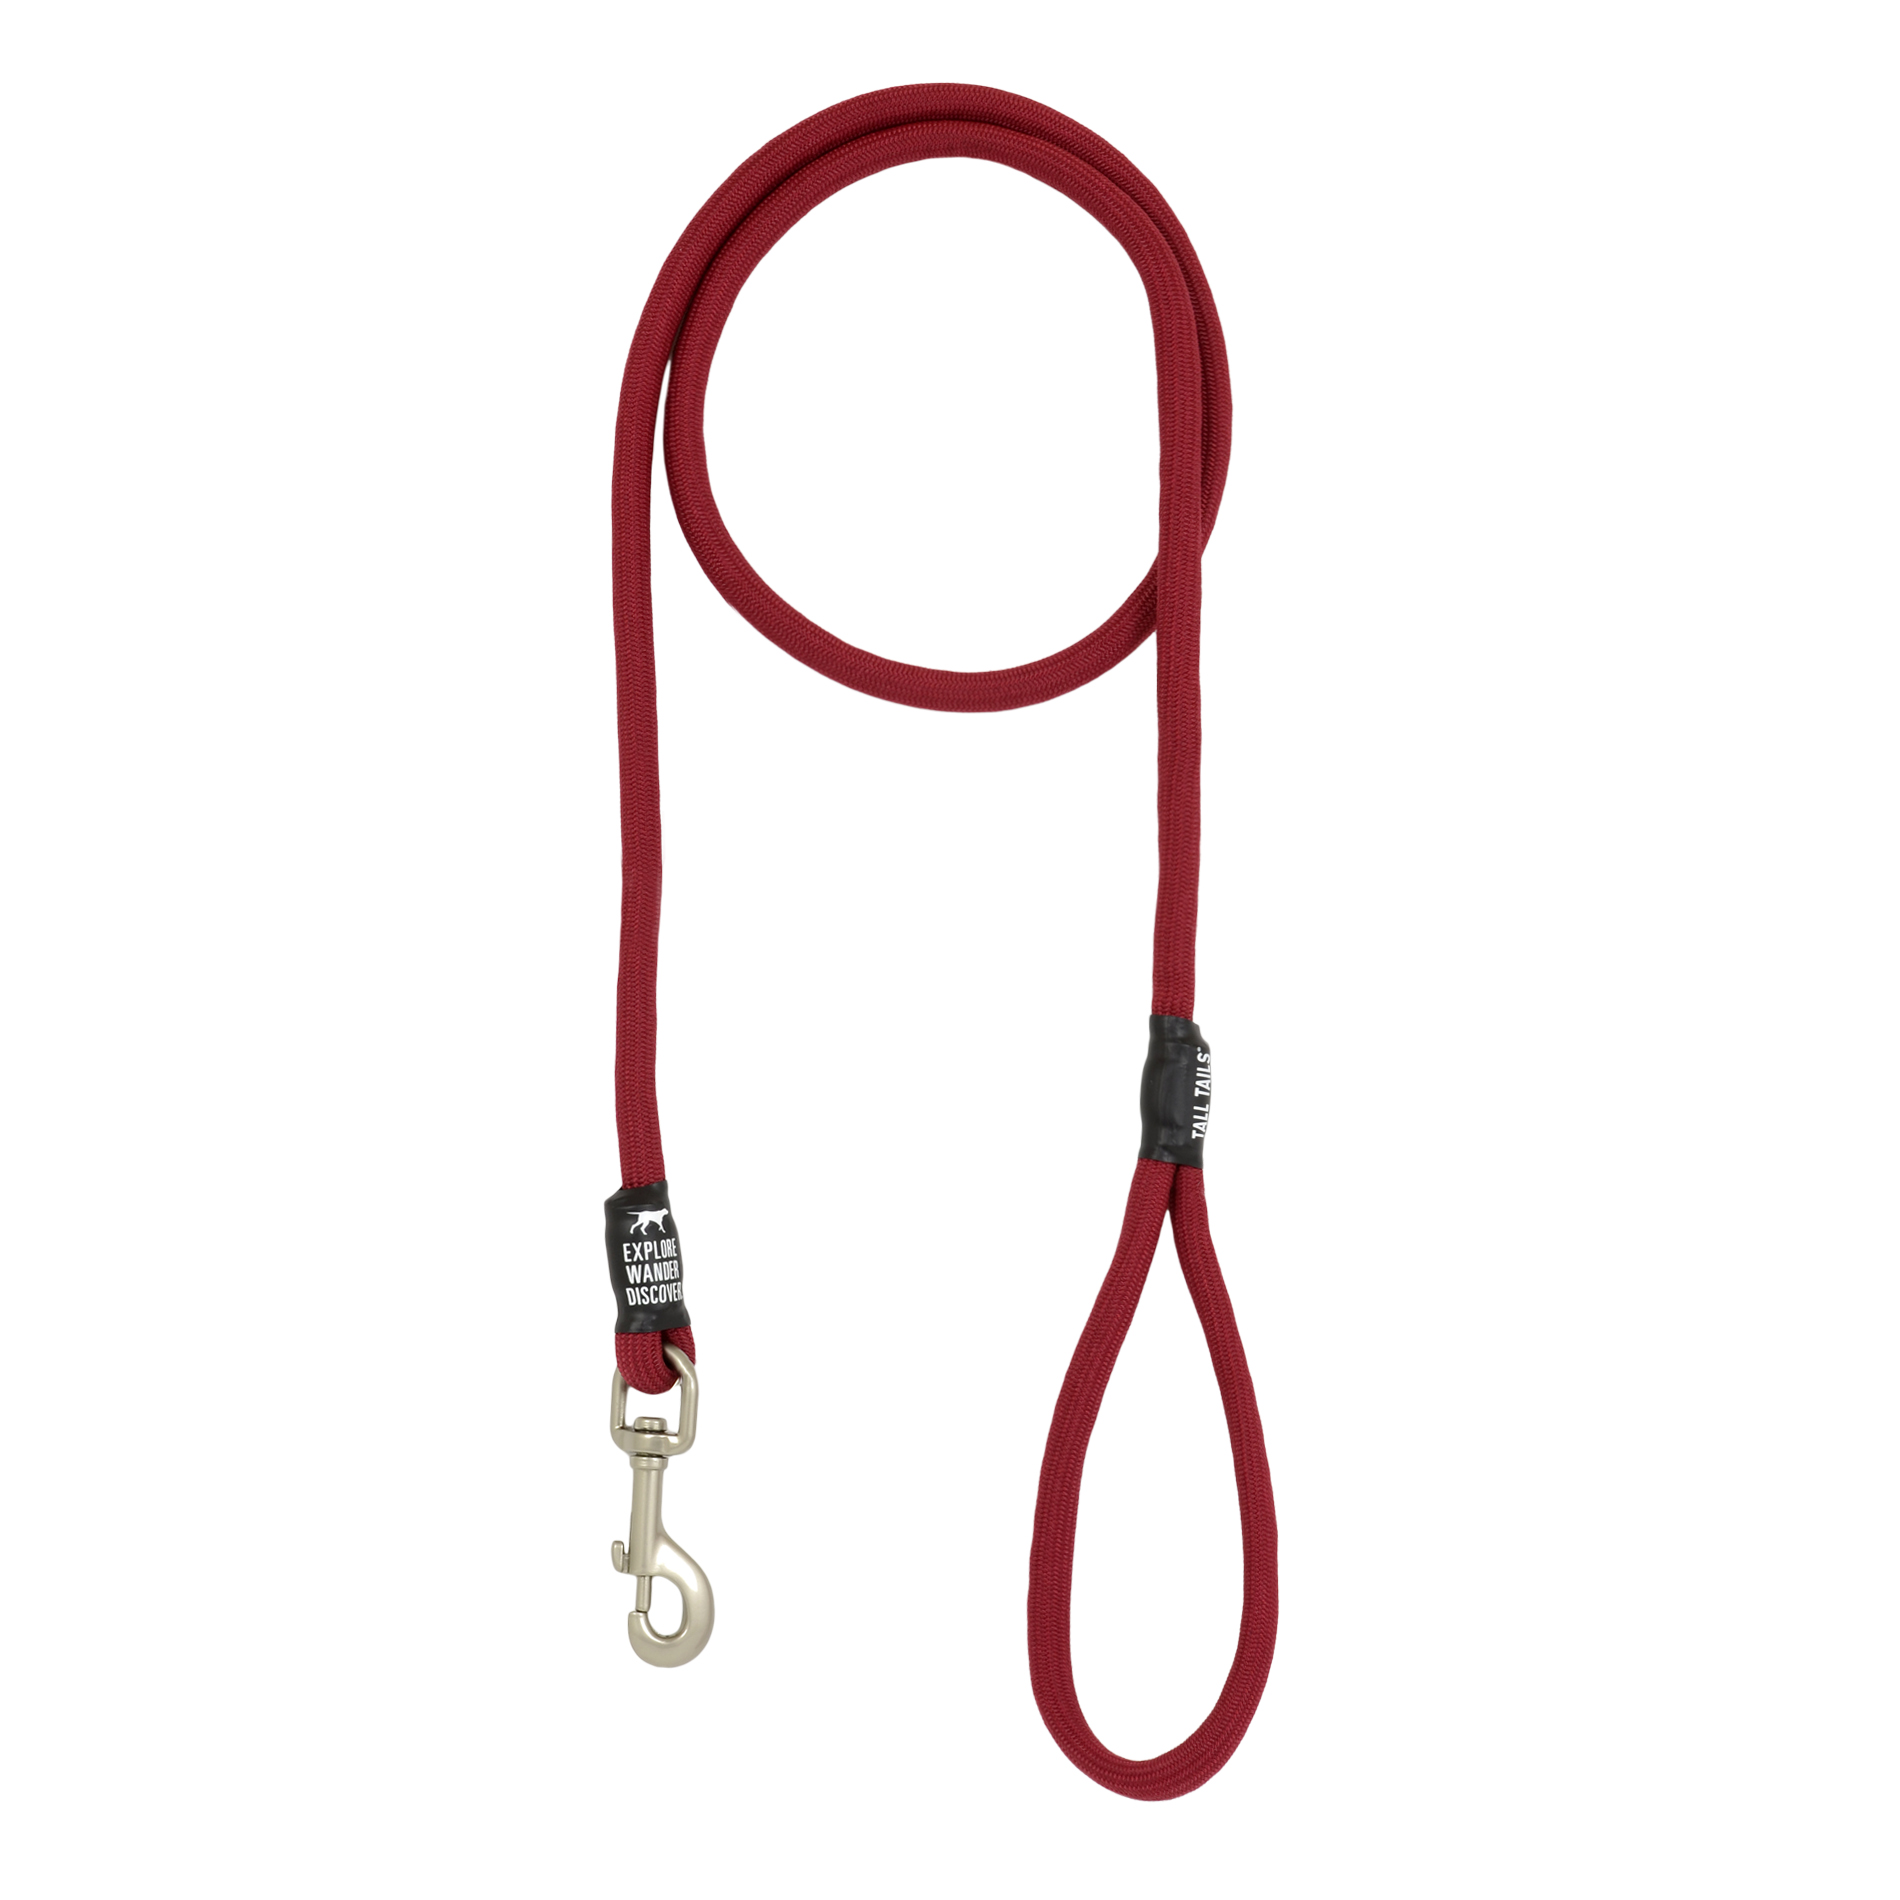 Tall Tails Dog Rope Leash, Red Image